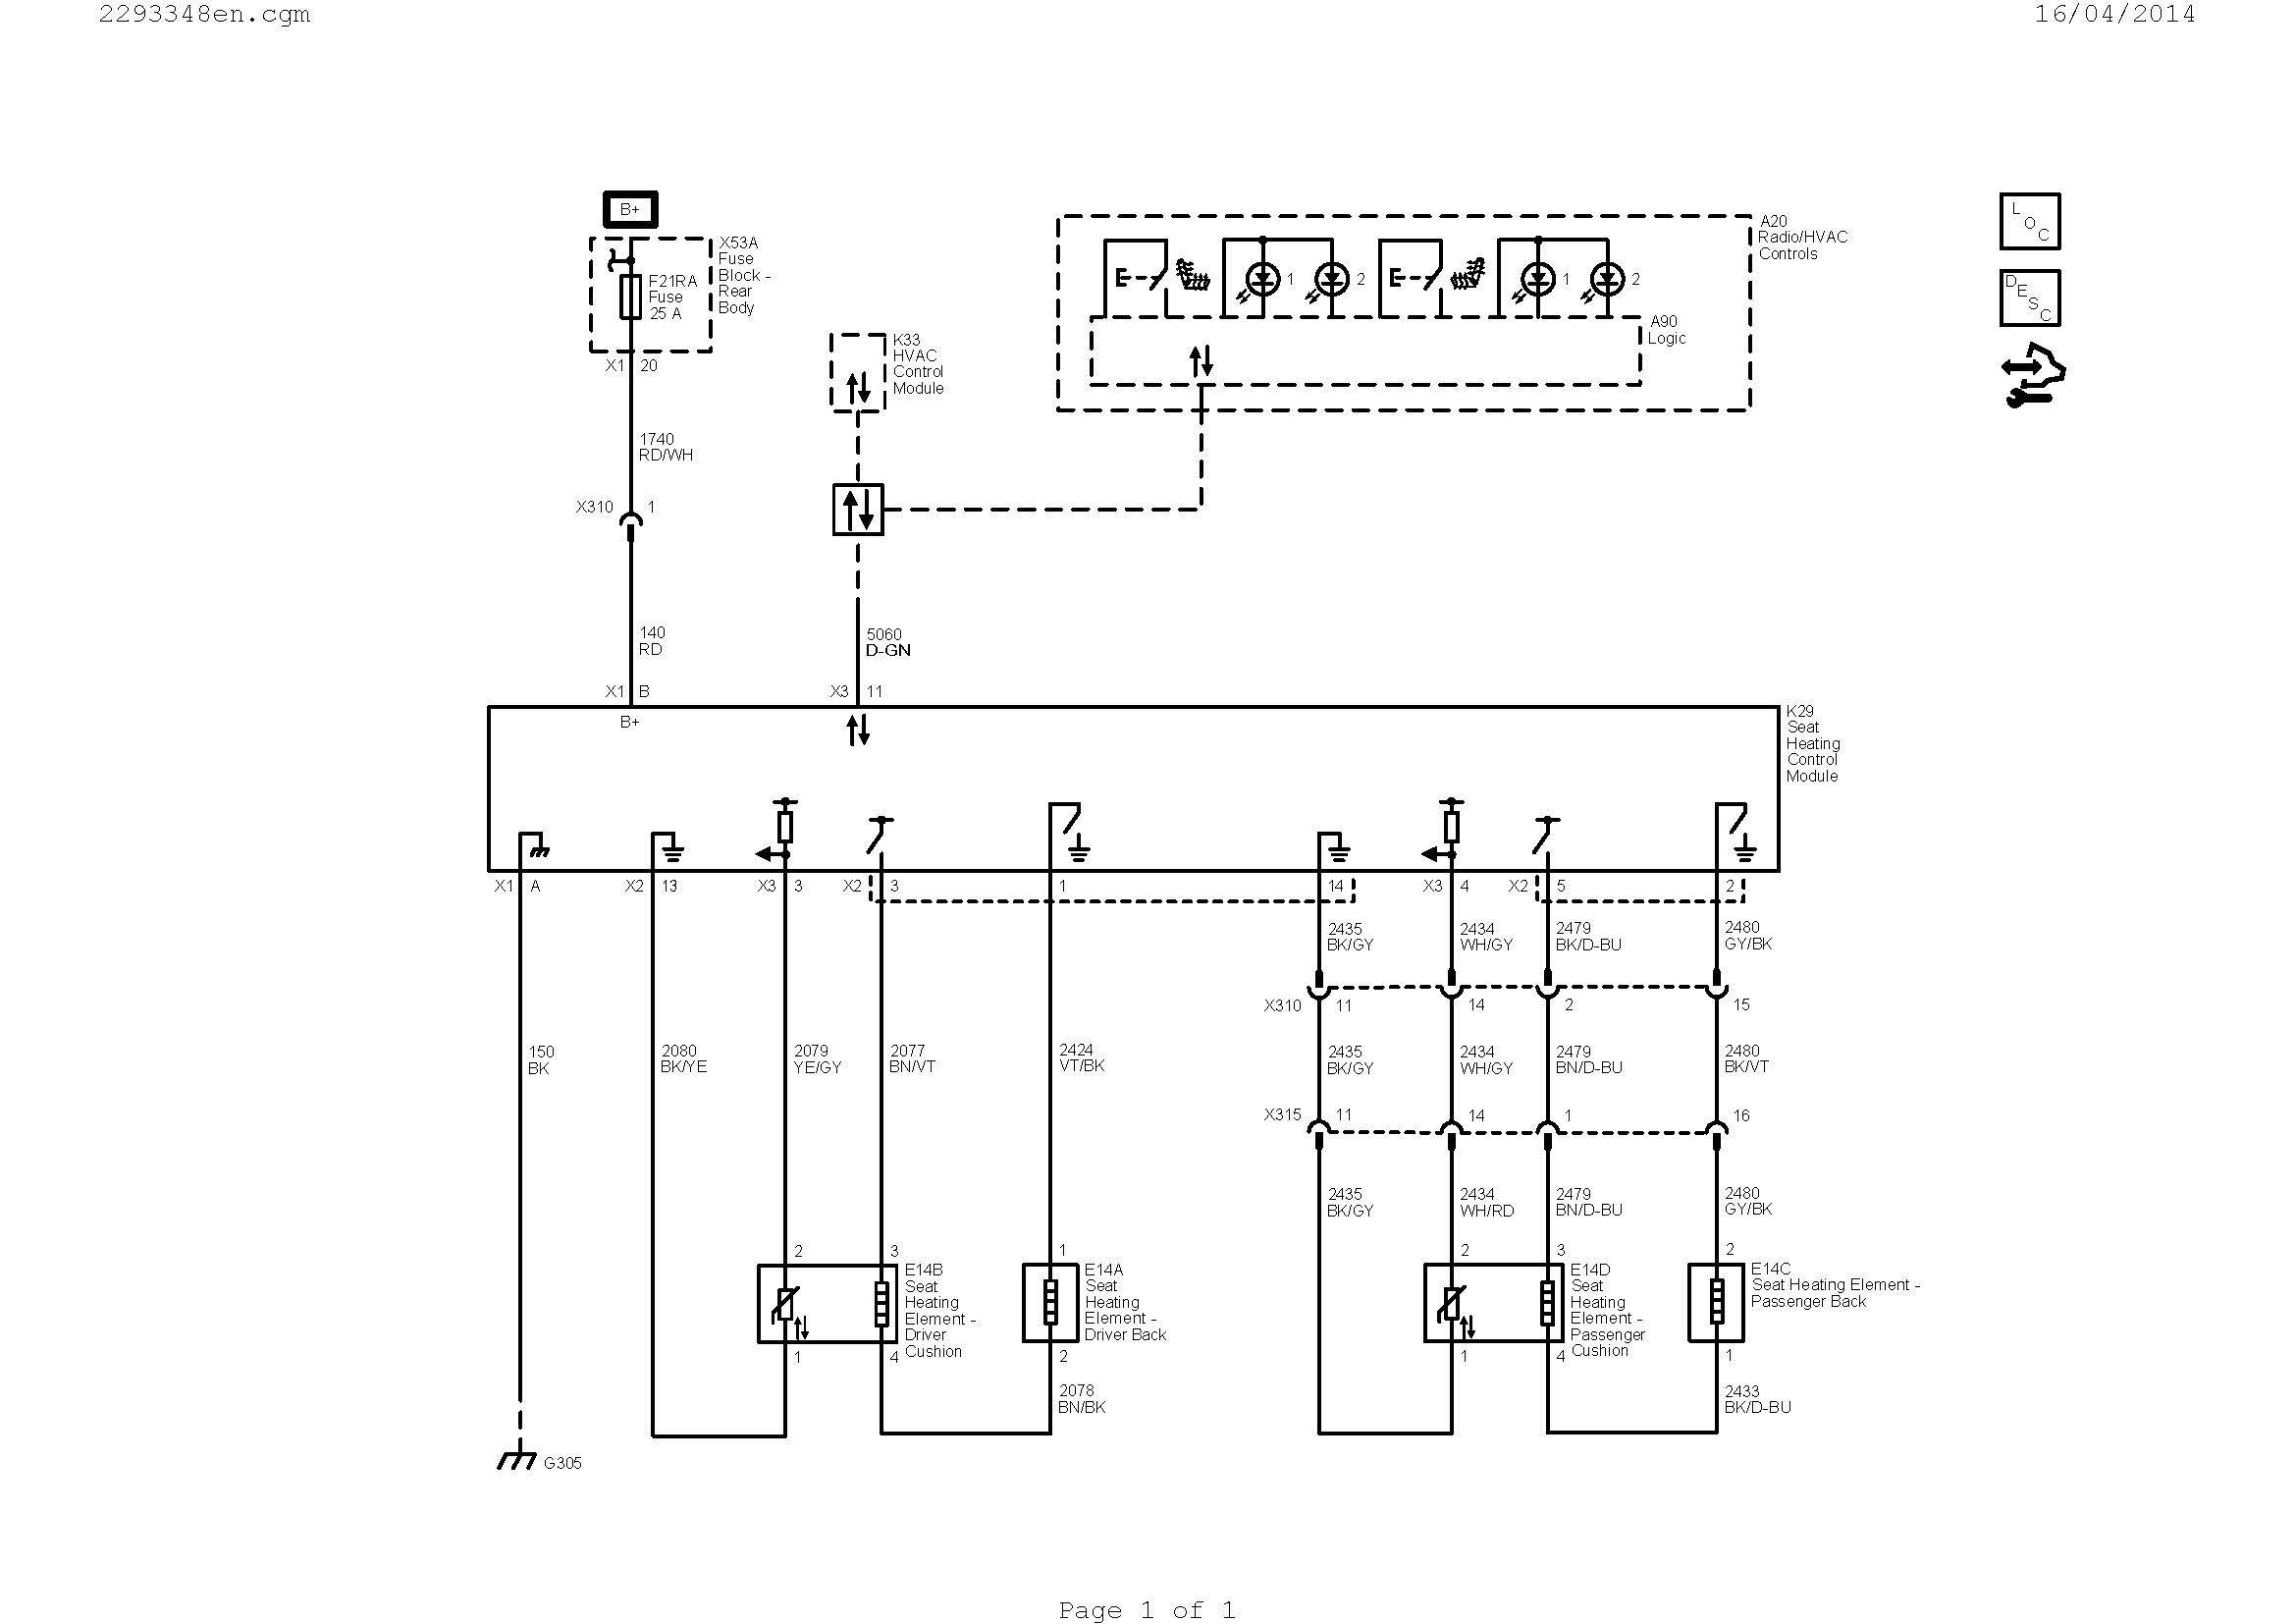 Q Light Luxe Wiring Diagram Dual Light Switch 2019 2 Lights 2 - Dual Light Switch Wiring Diagram